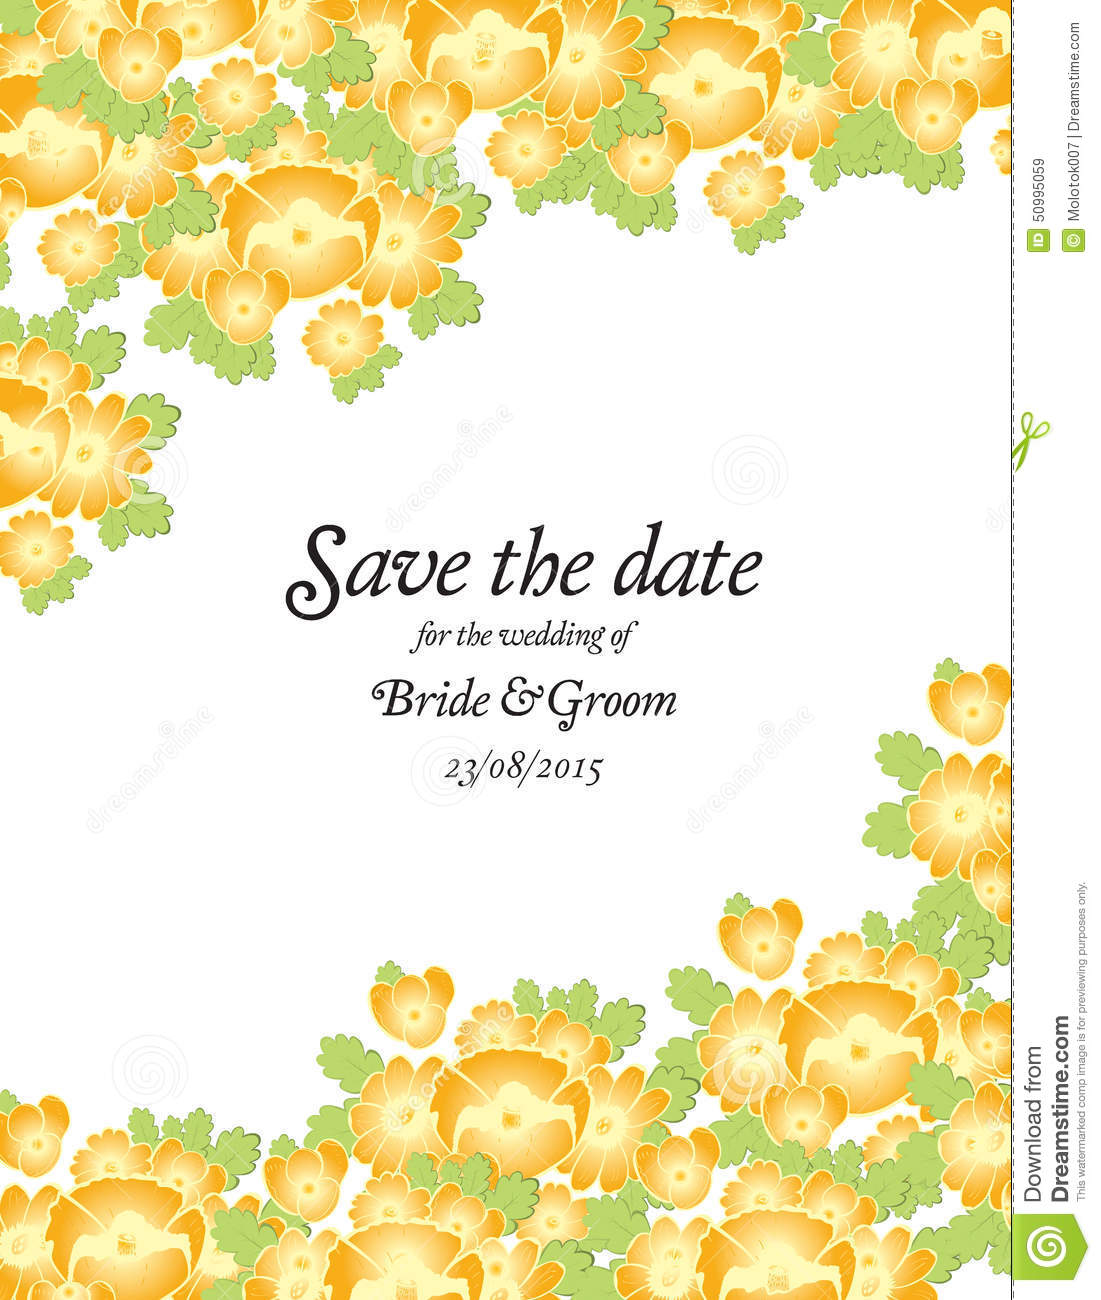 Golden Save The Date For Wedding Invitation Wedding: Save The Date Wedding Invite Card Template With Golden